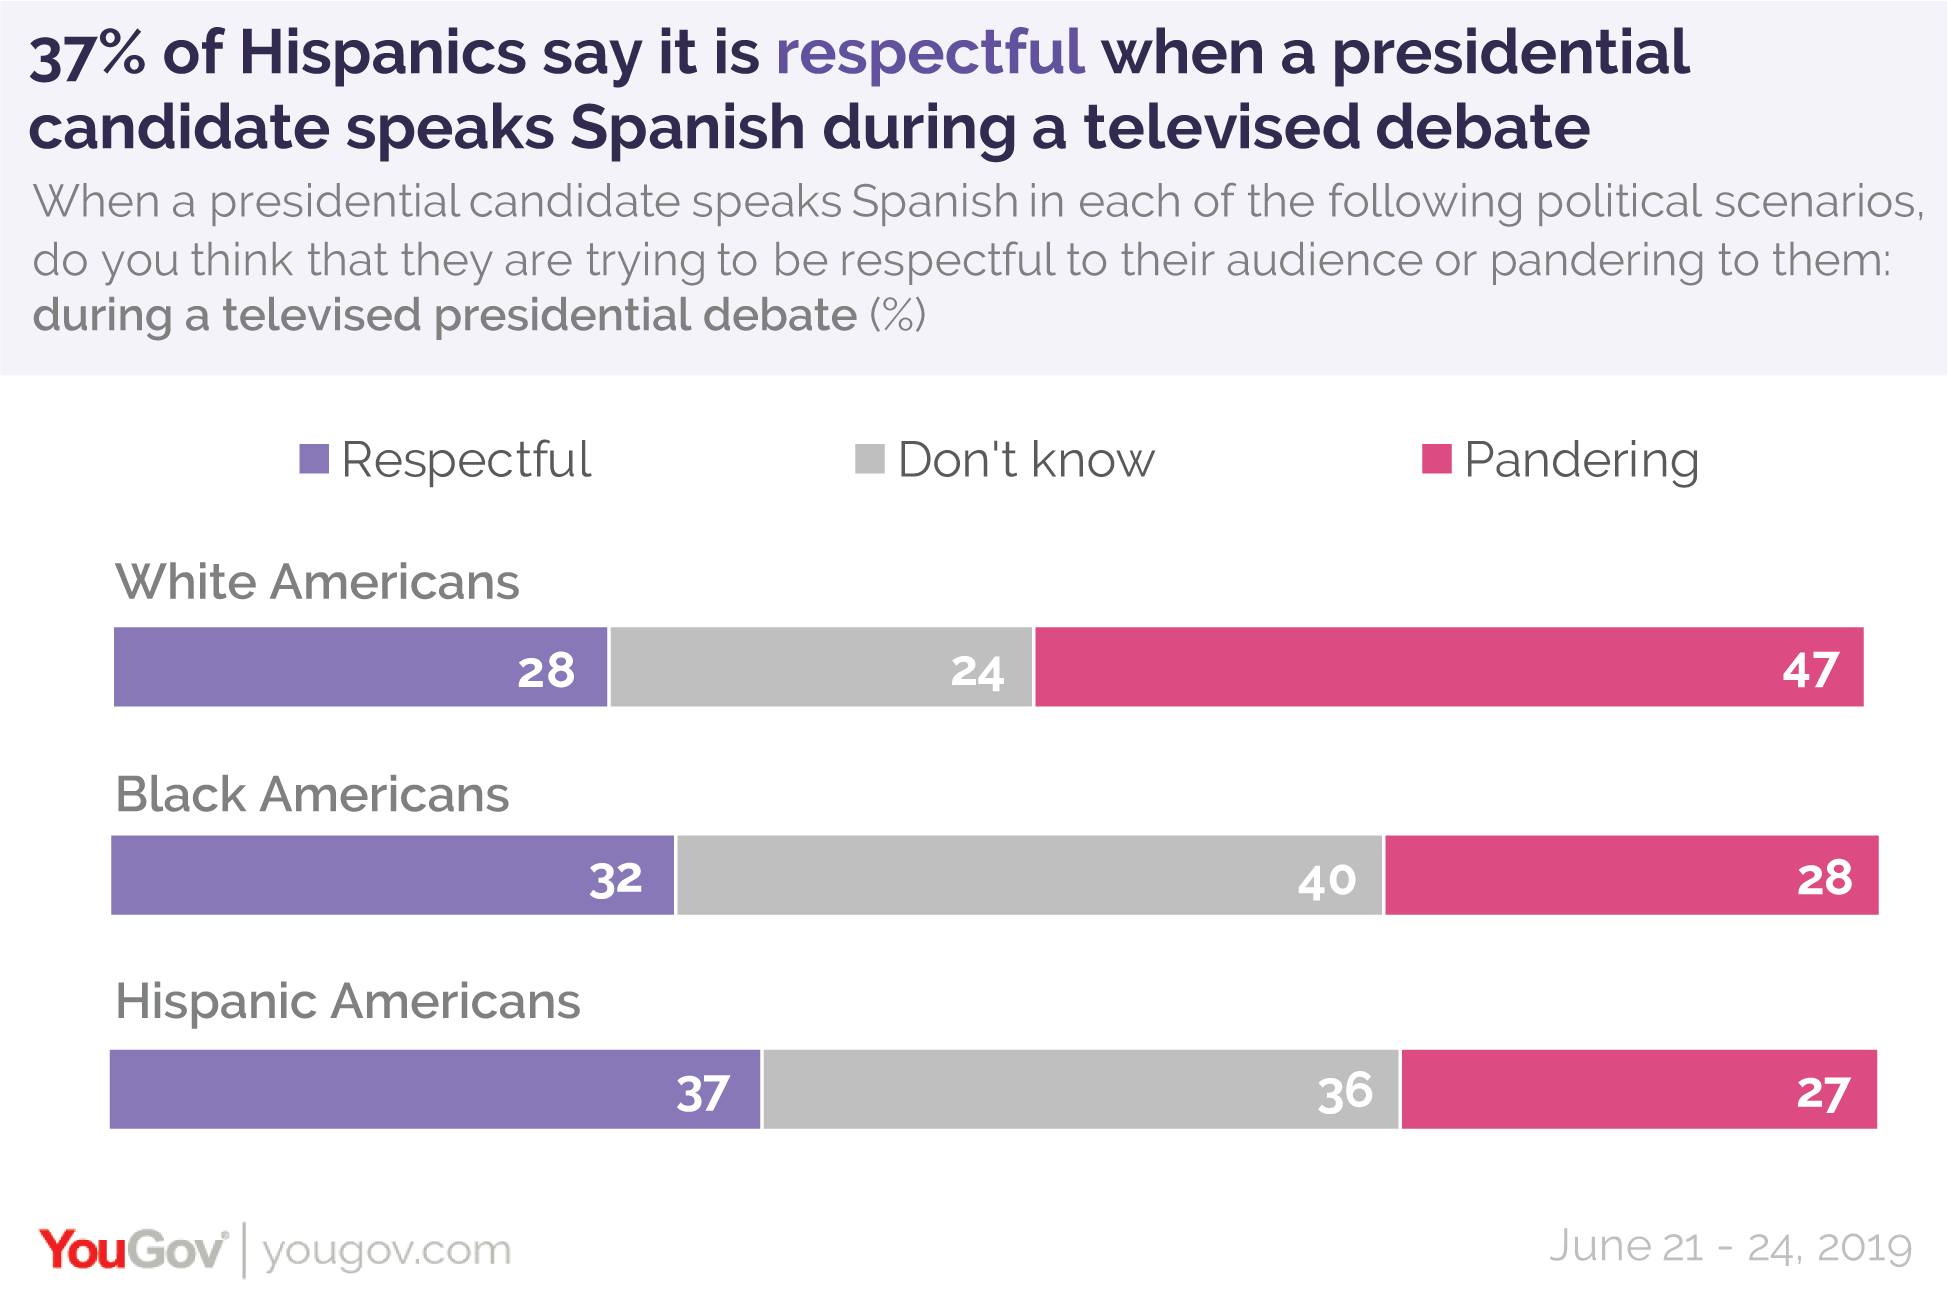 37% of Hispanic Americans say it is respectful when a presidential candidate speaks Spanish during a televised debate